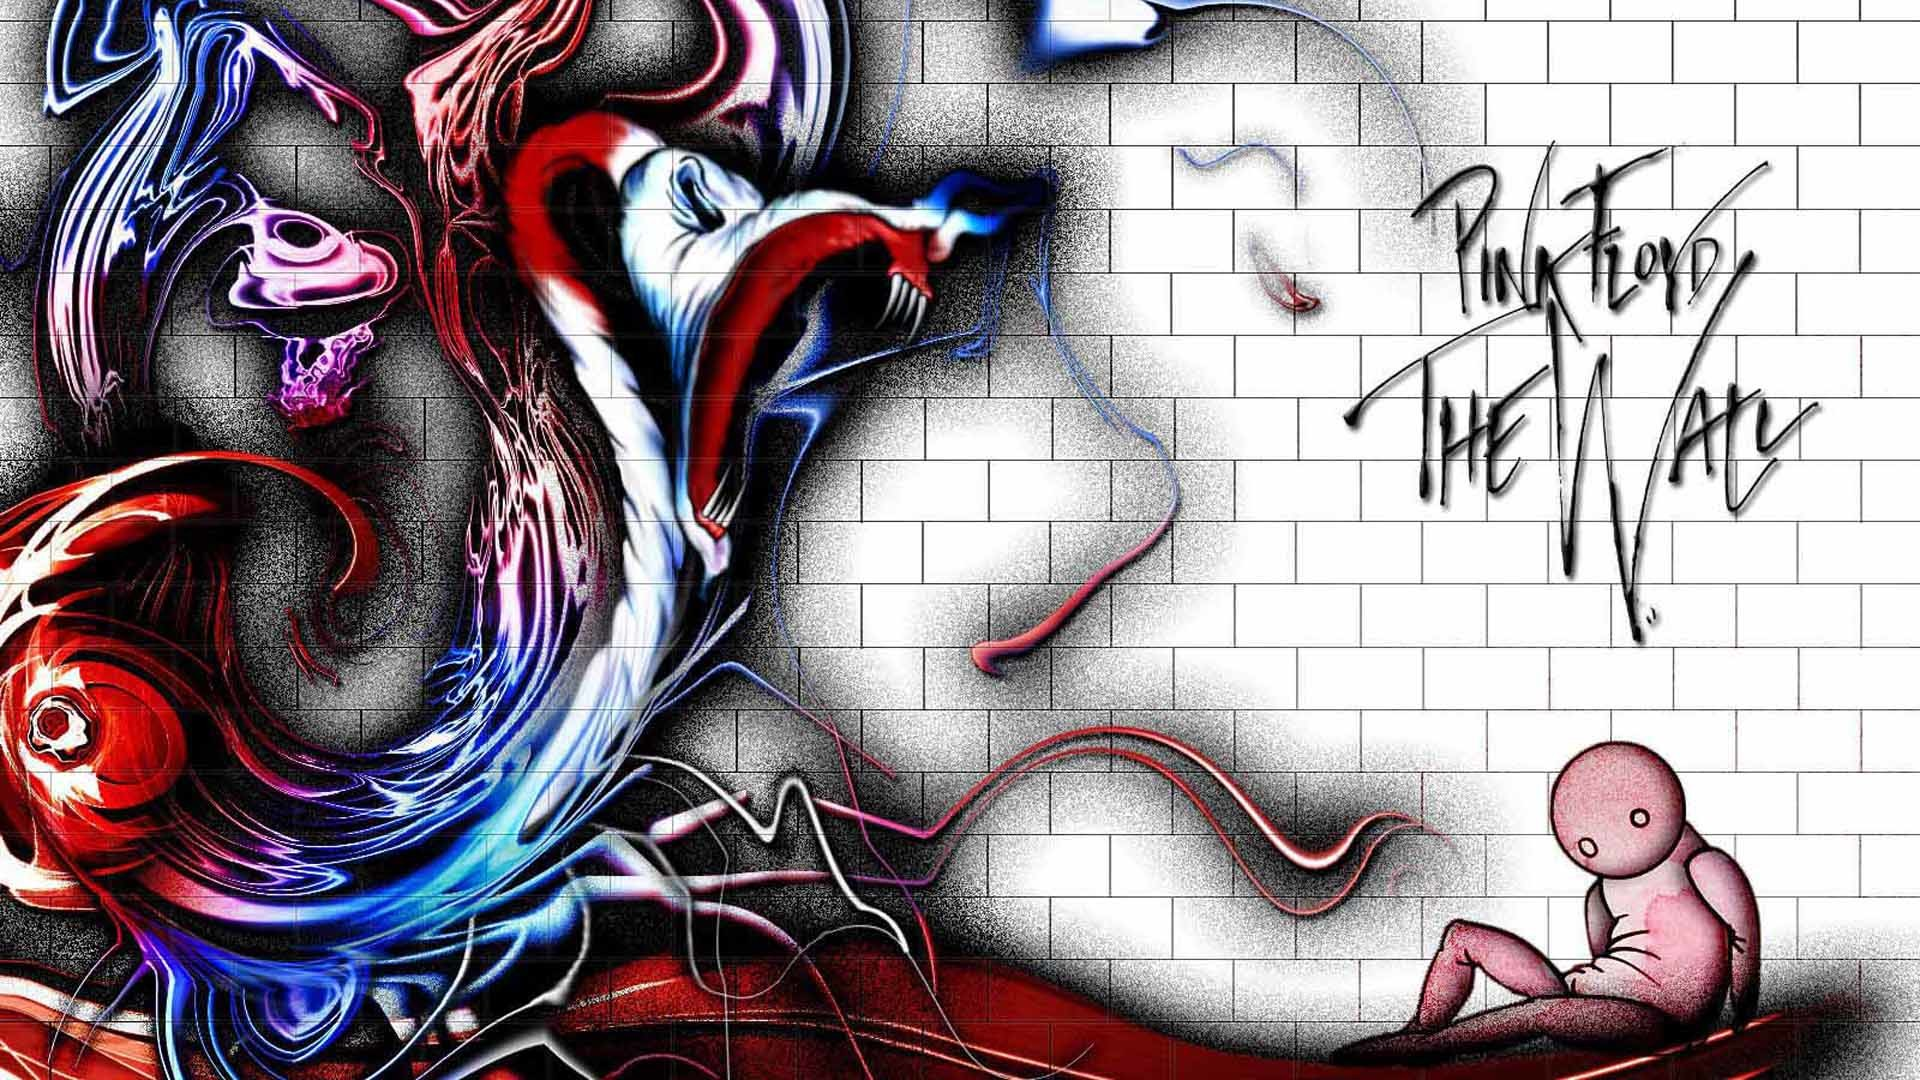 Pink Floyd Images 6 HD Wallpapers | lzamgs.com